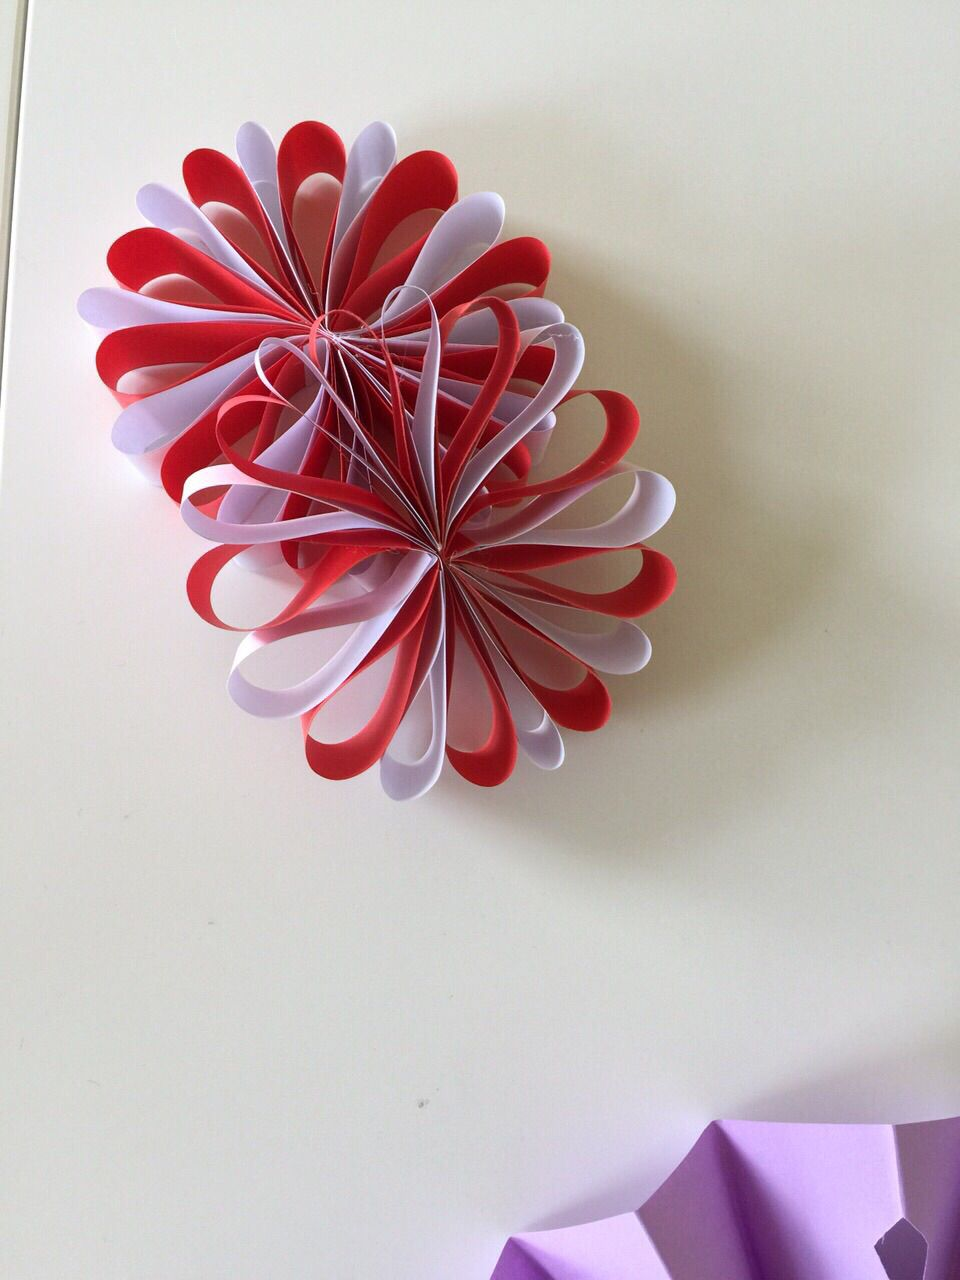 Paper Flower My Art And Craft Work Pinterest Craft Work And Craft